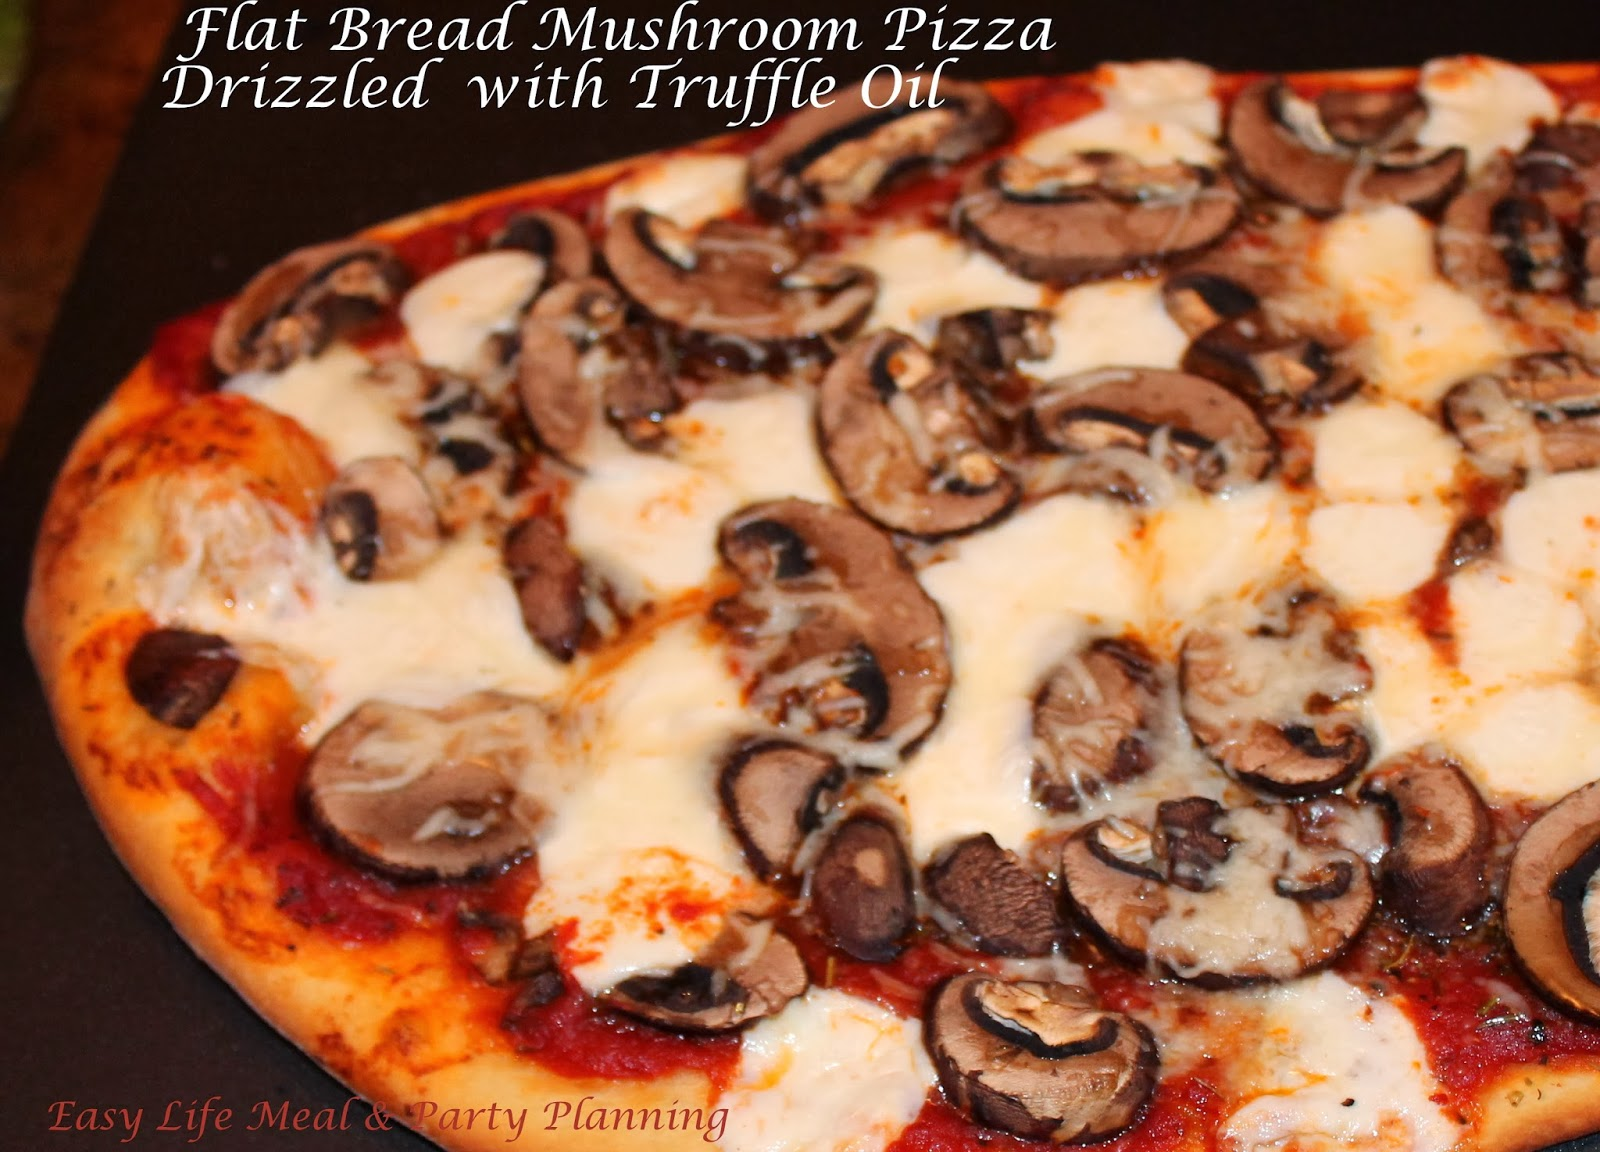 Flat Bread Mushroom Pizza - Easy Life Meal & Party Planning - A scrumptious thin and crispy flat bread pizza loaded with baby bella mushrooms, fresh mozzarella pearls and drizzled with truffle oil.